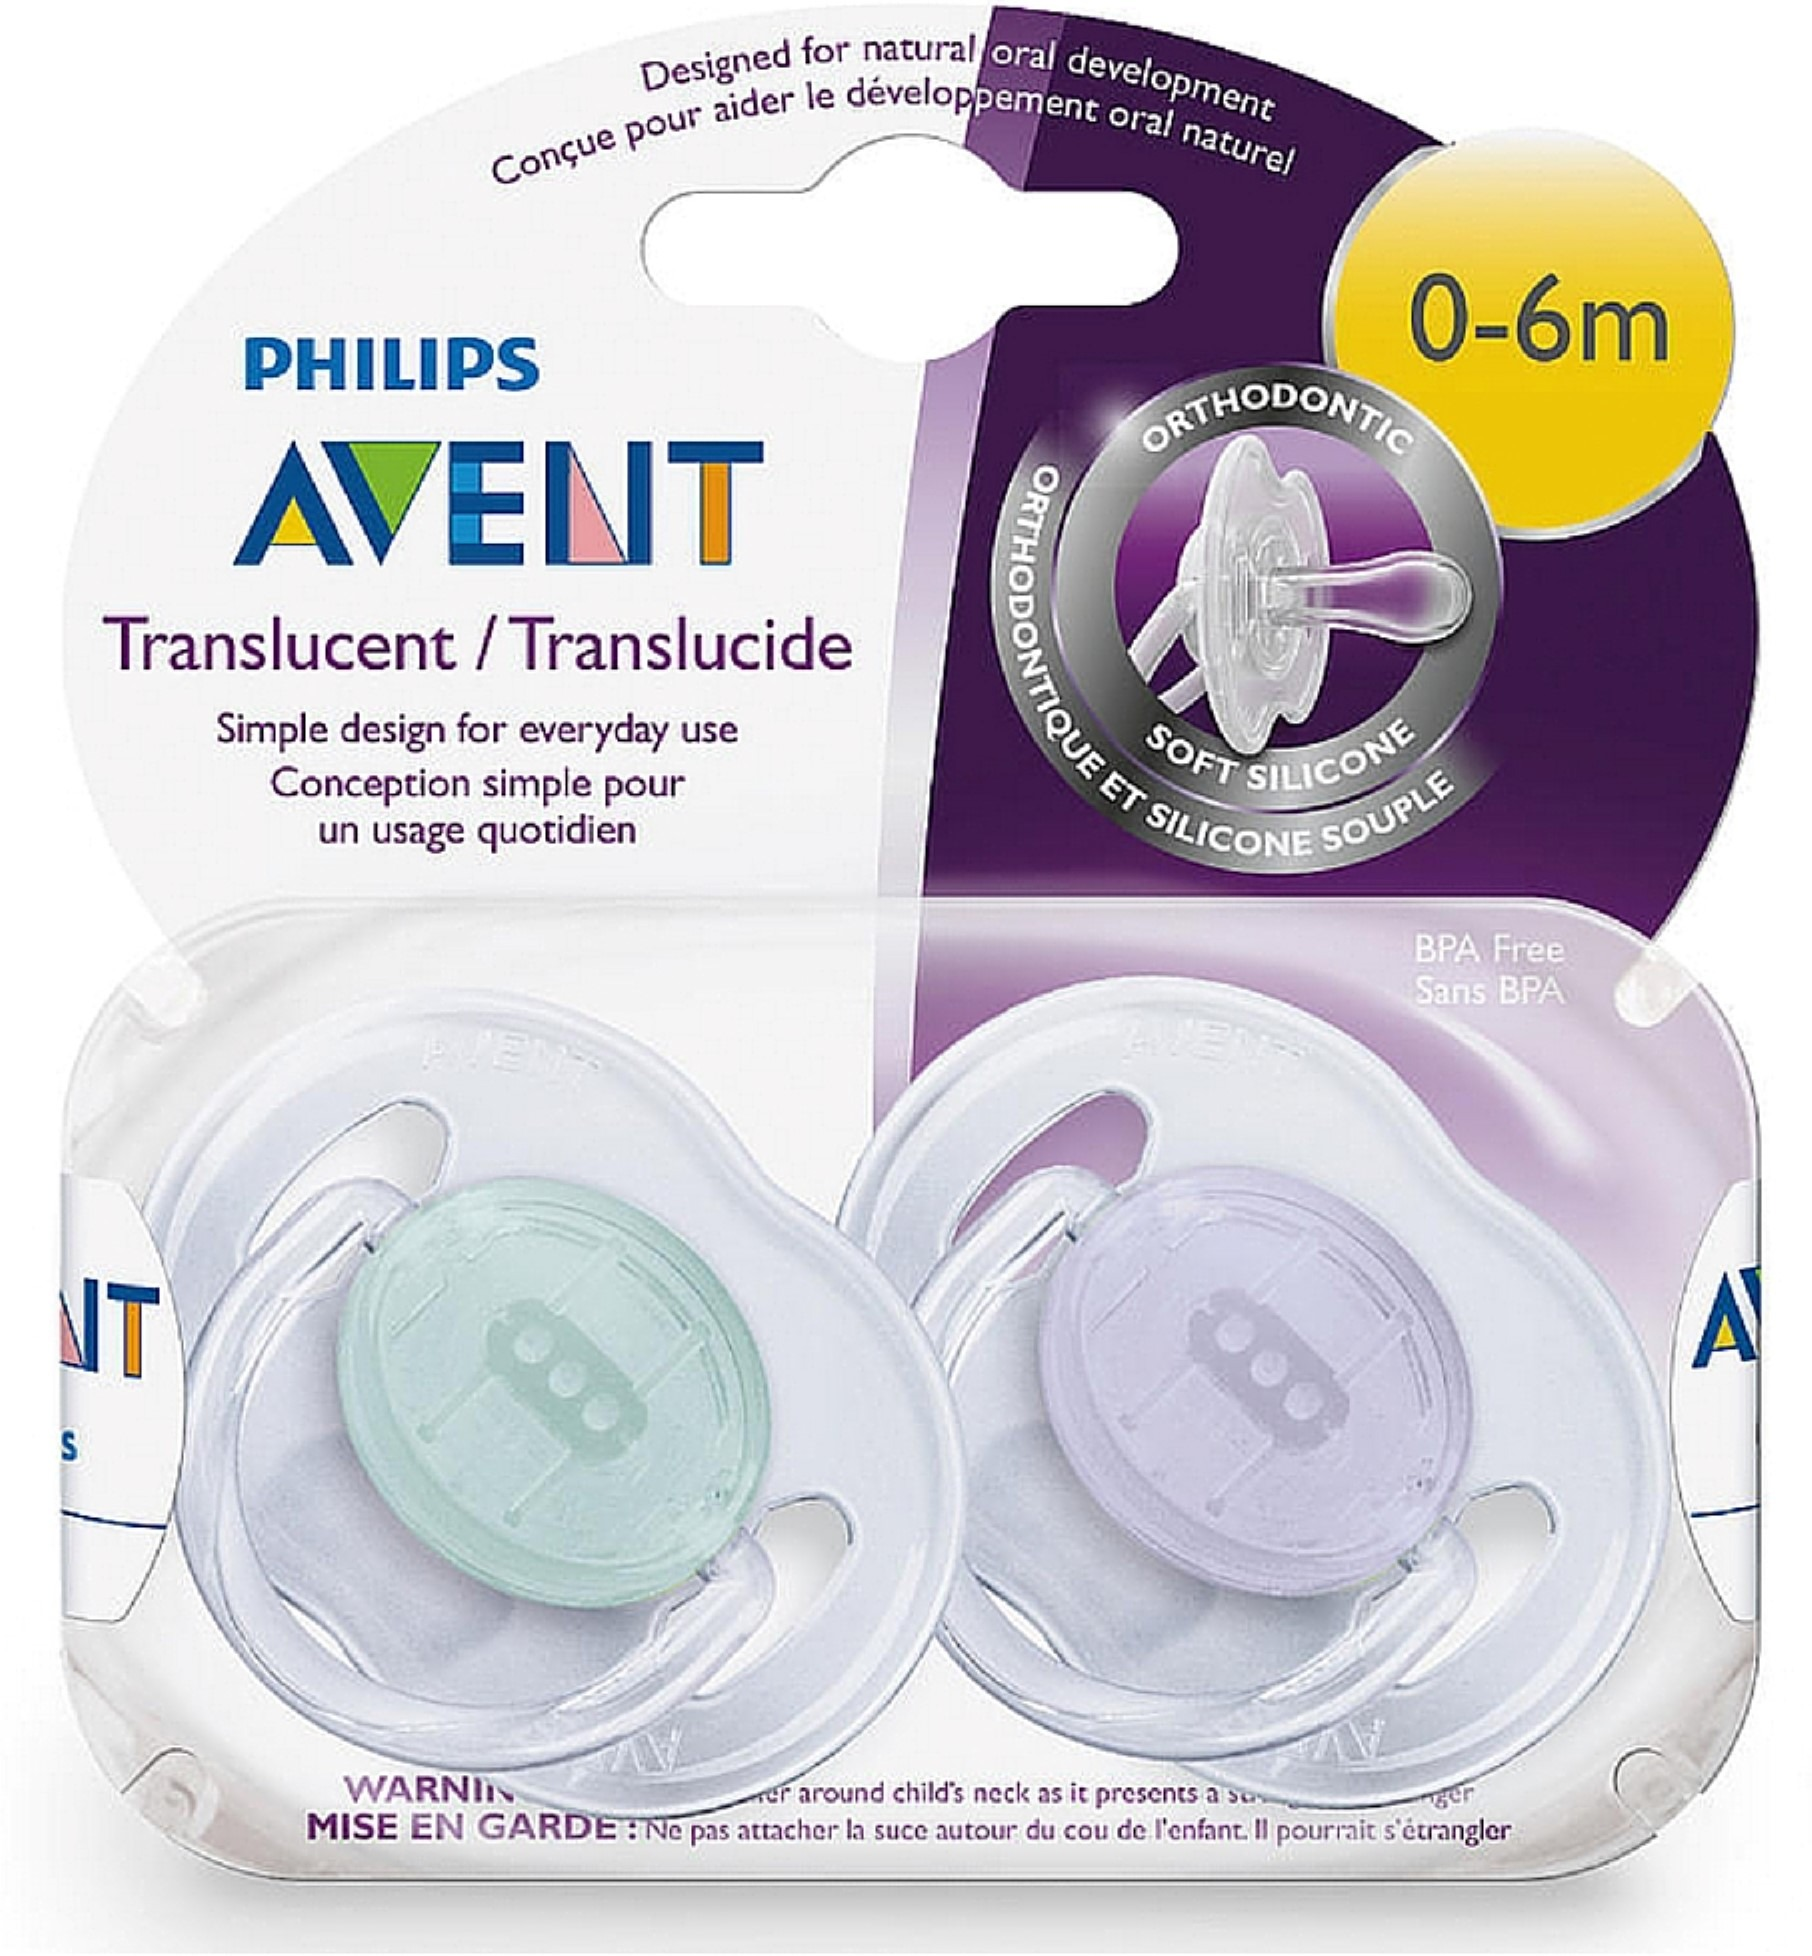 Philips Avent Translucent Pacifiers, 0-6 Months - 2 Counts